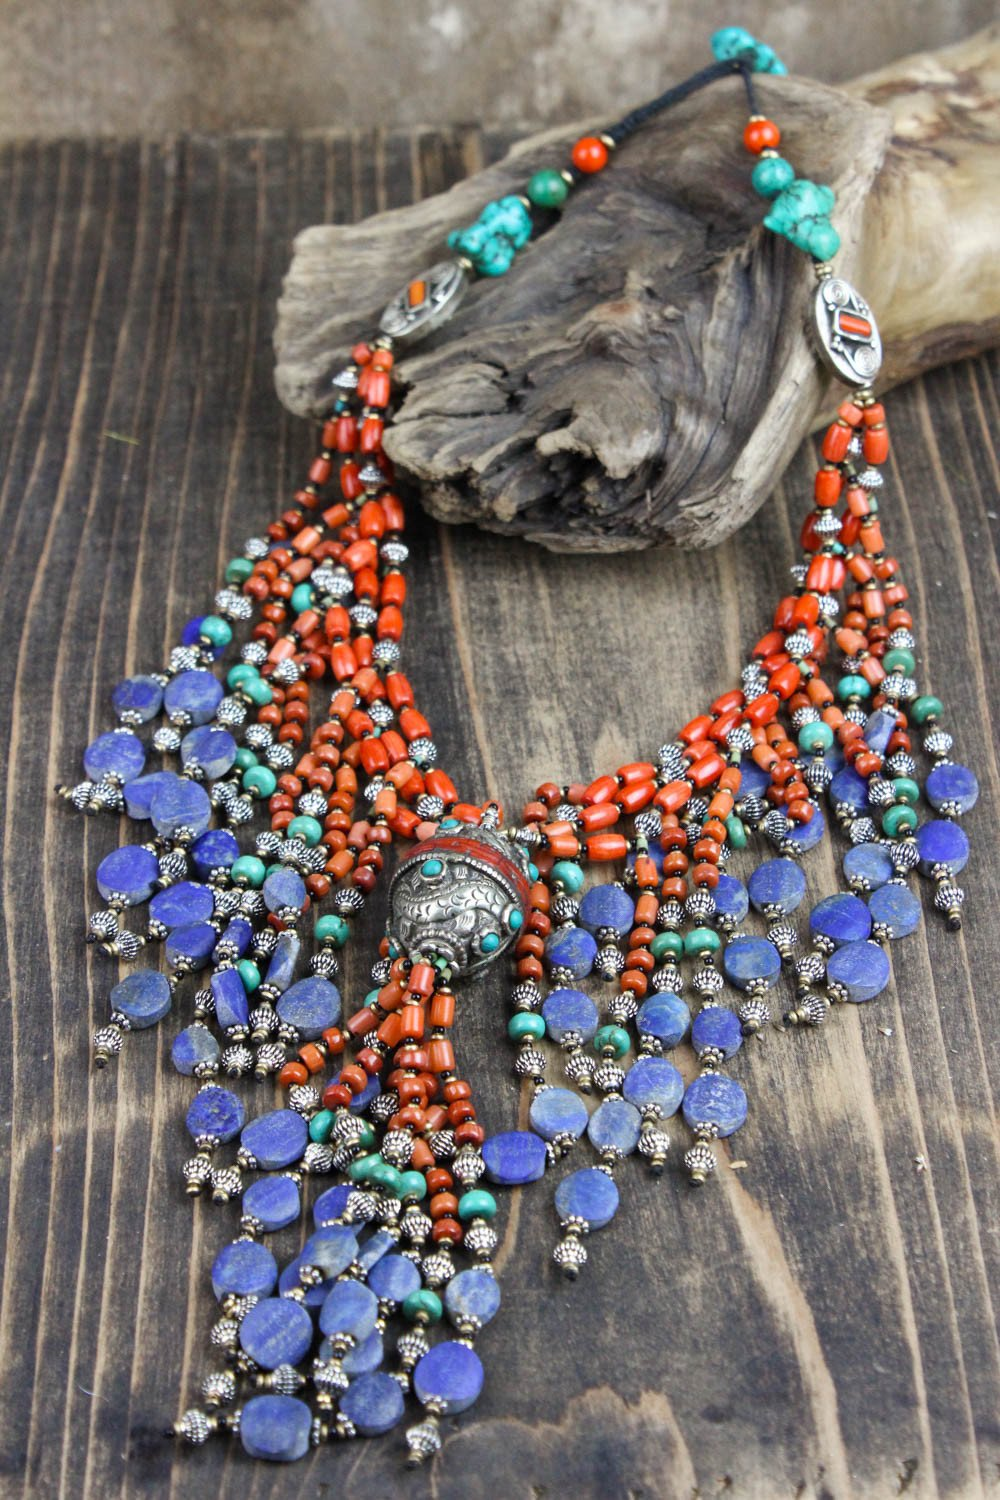 Tibetan Necklace of Deep Reflection